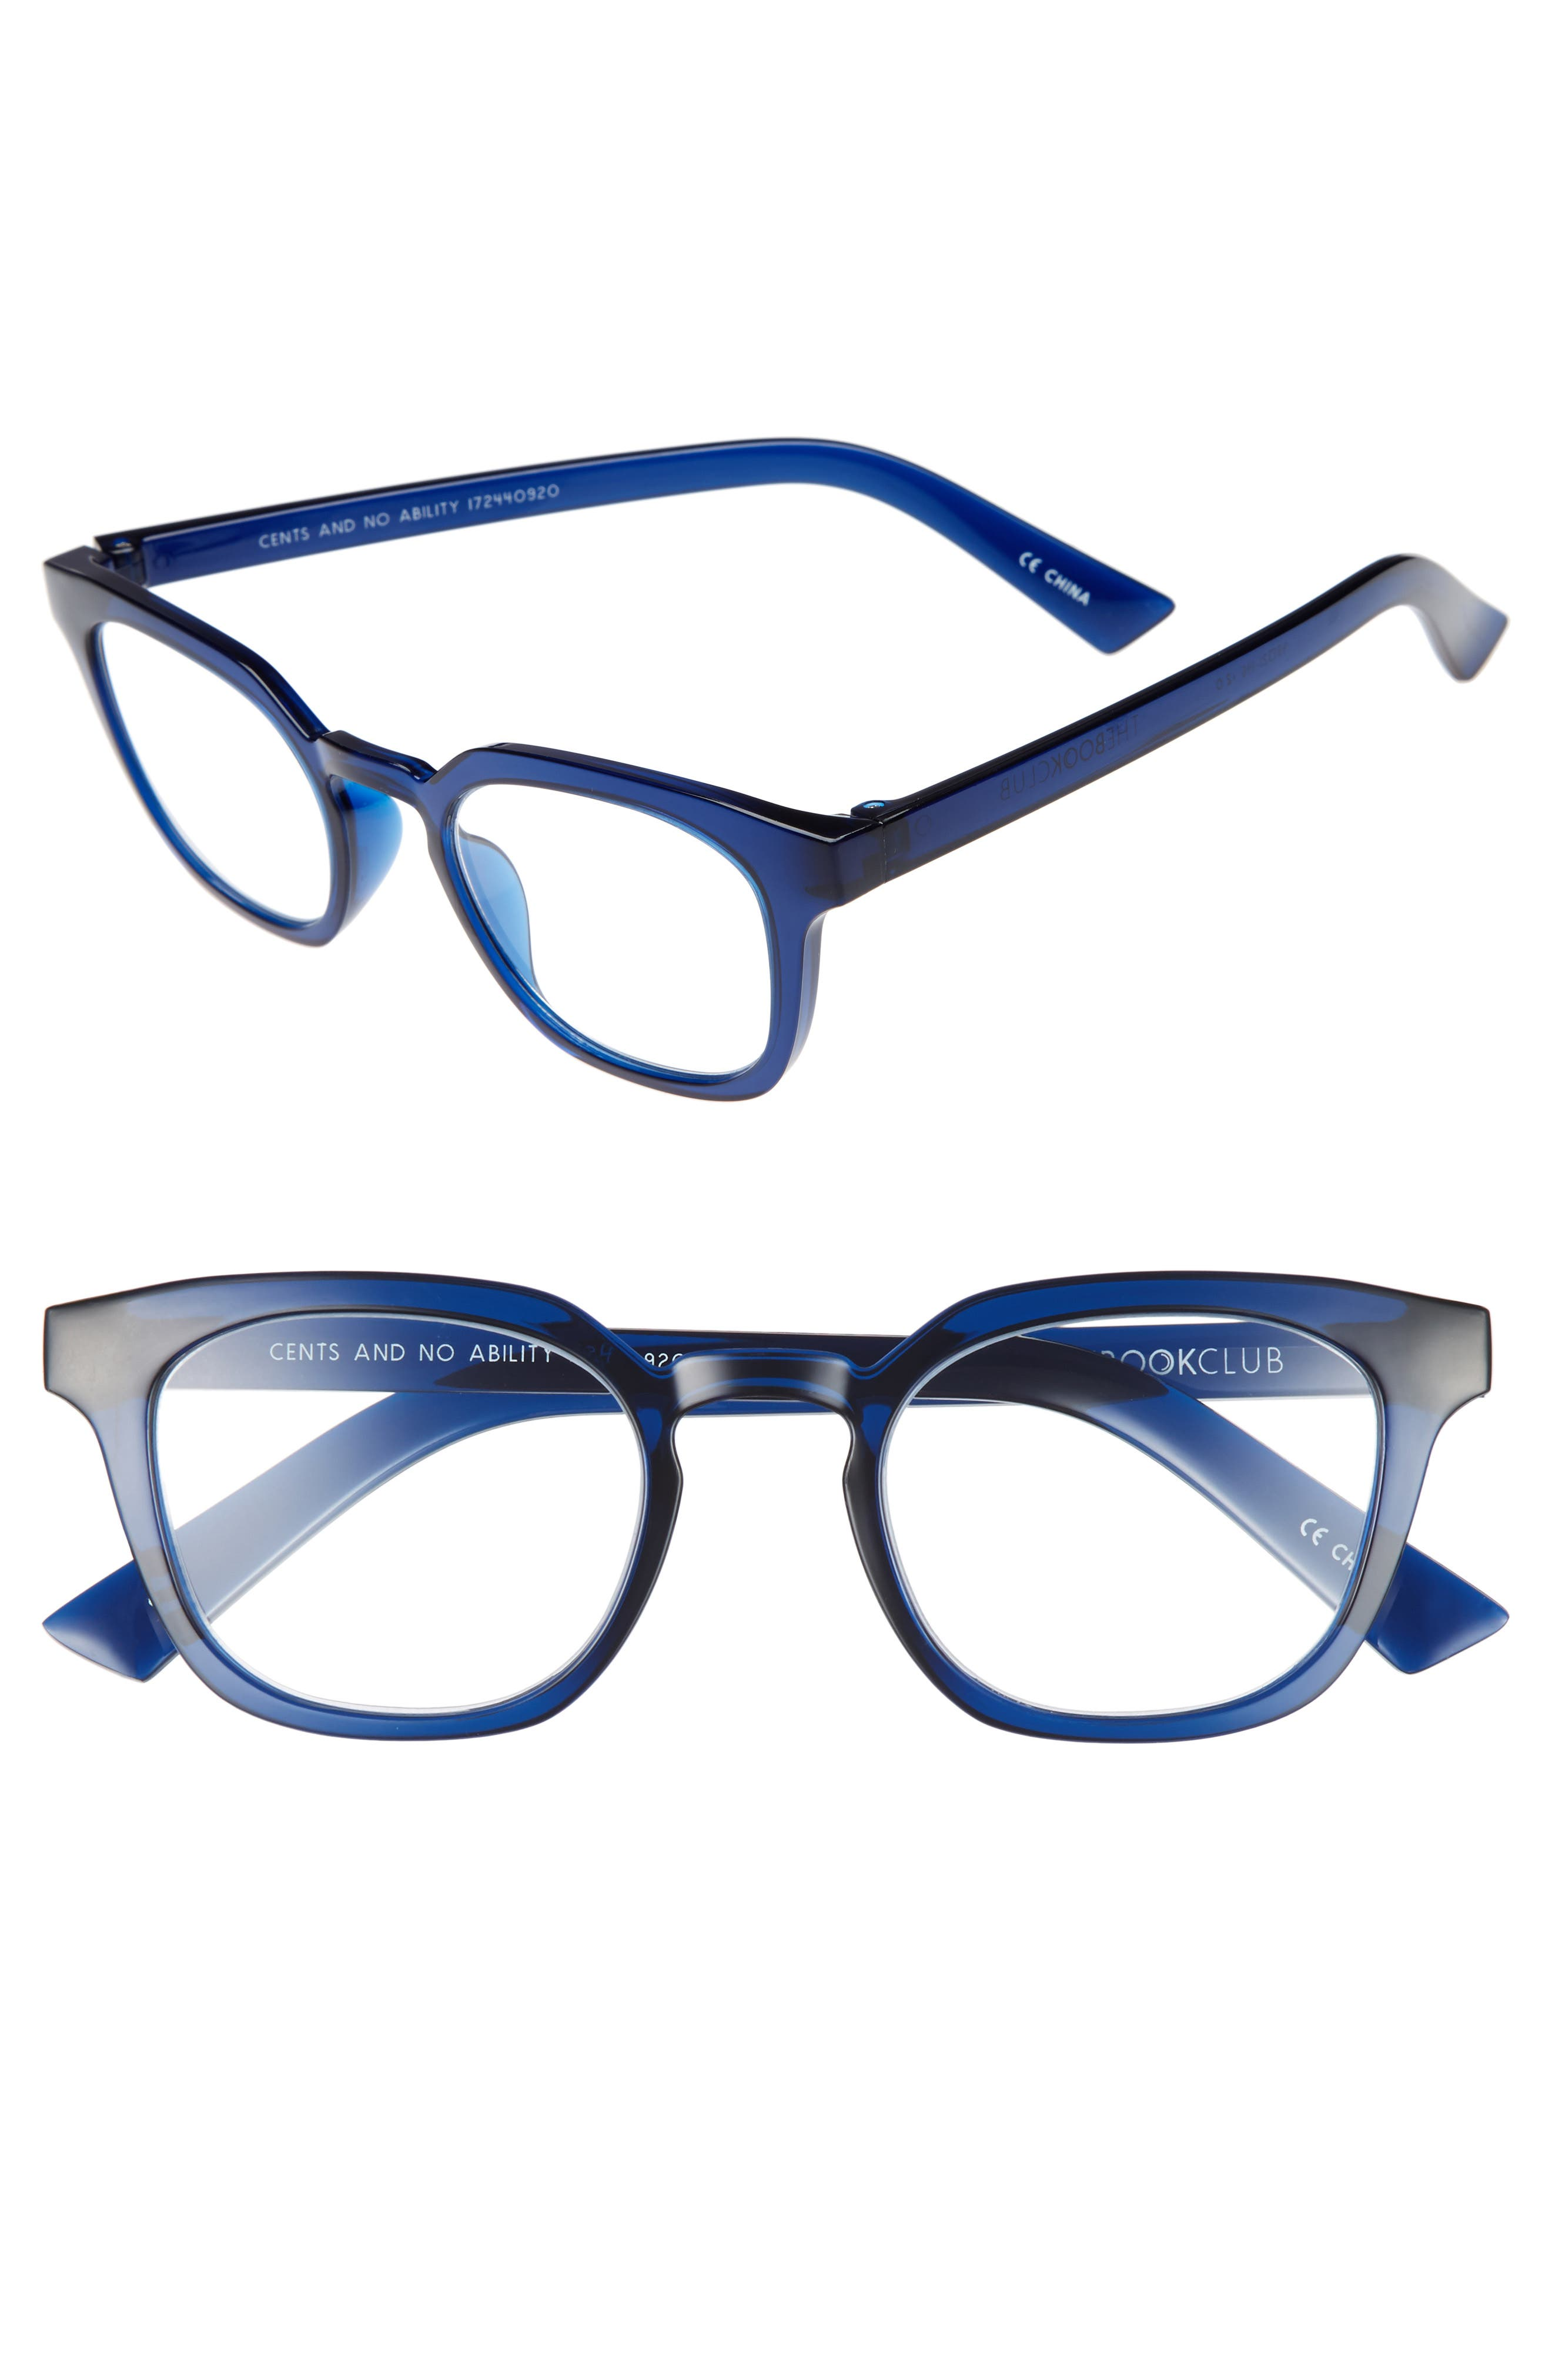 The Bookclub Cents and No Ability 48mm Reading Glasses